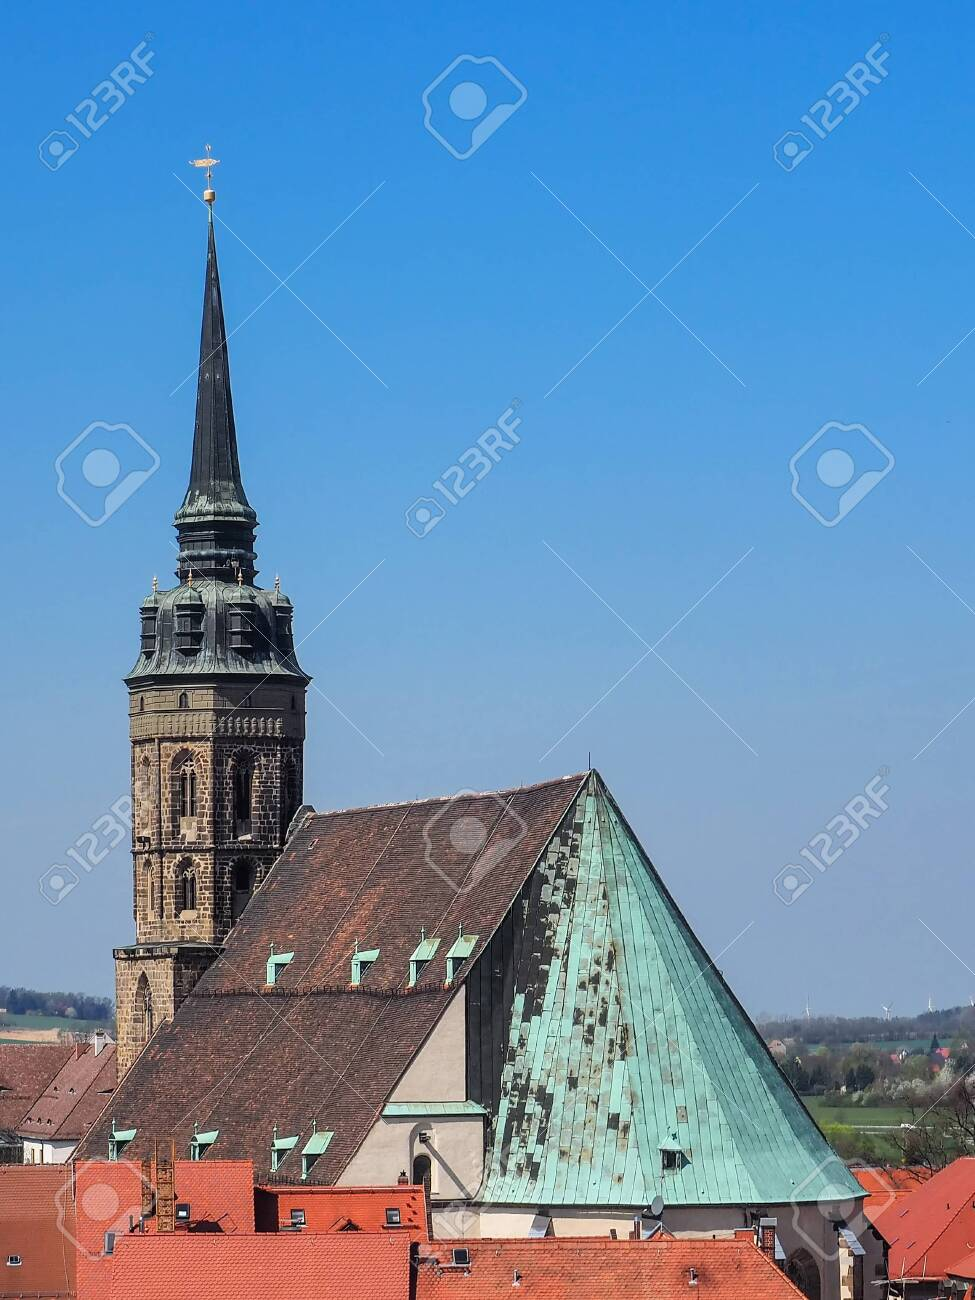 Bautzen, Saxony, Germany: aerial view of city Bautzen with the St. Peter's cathedral - 146409527